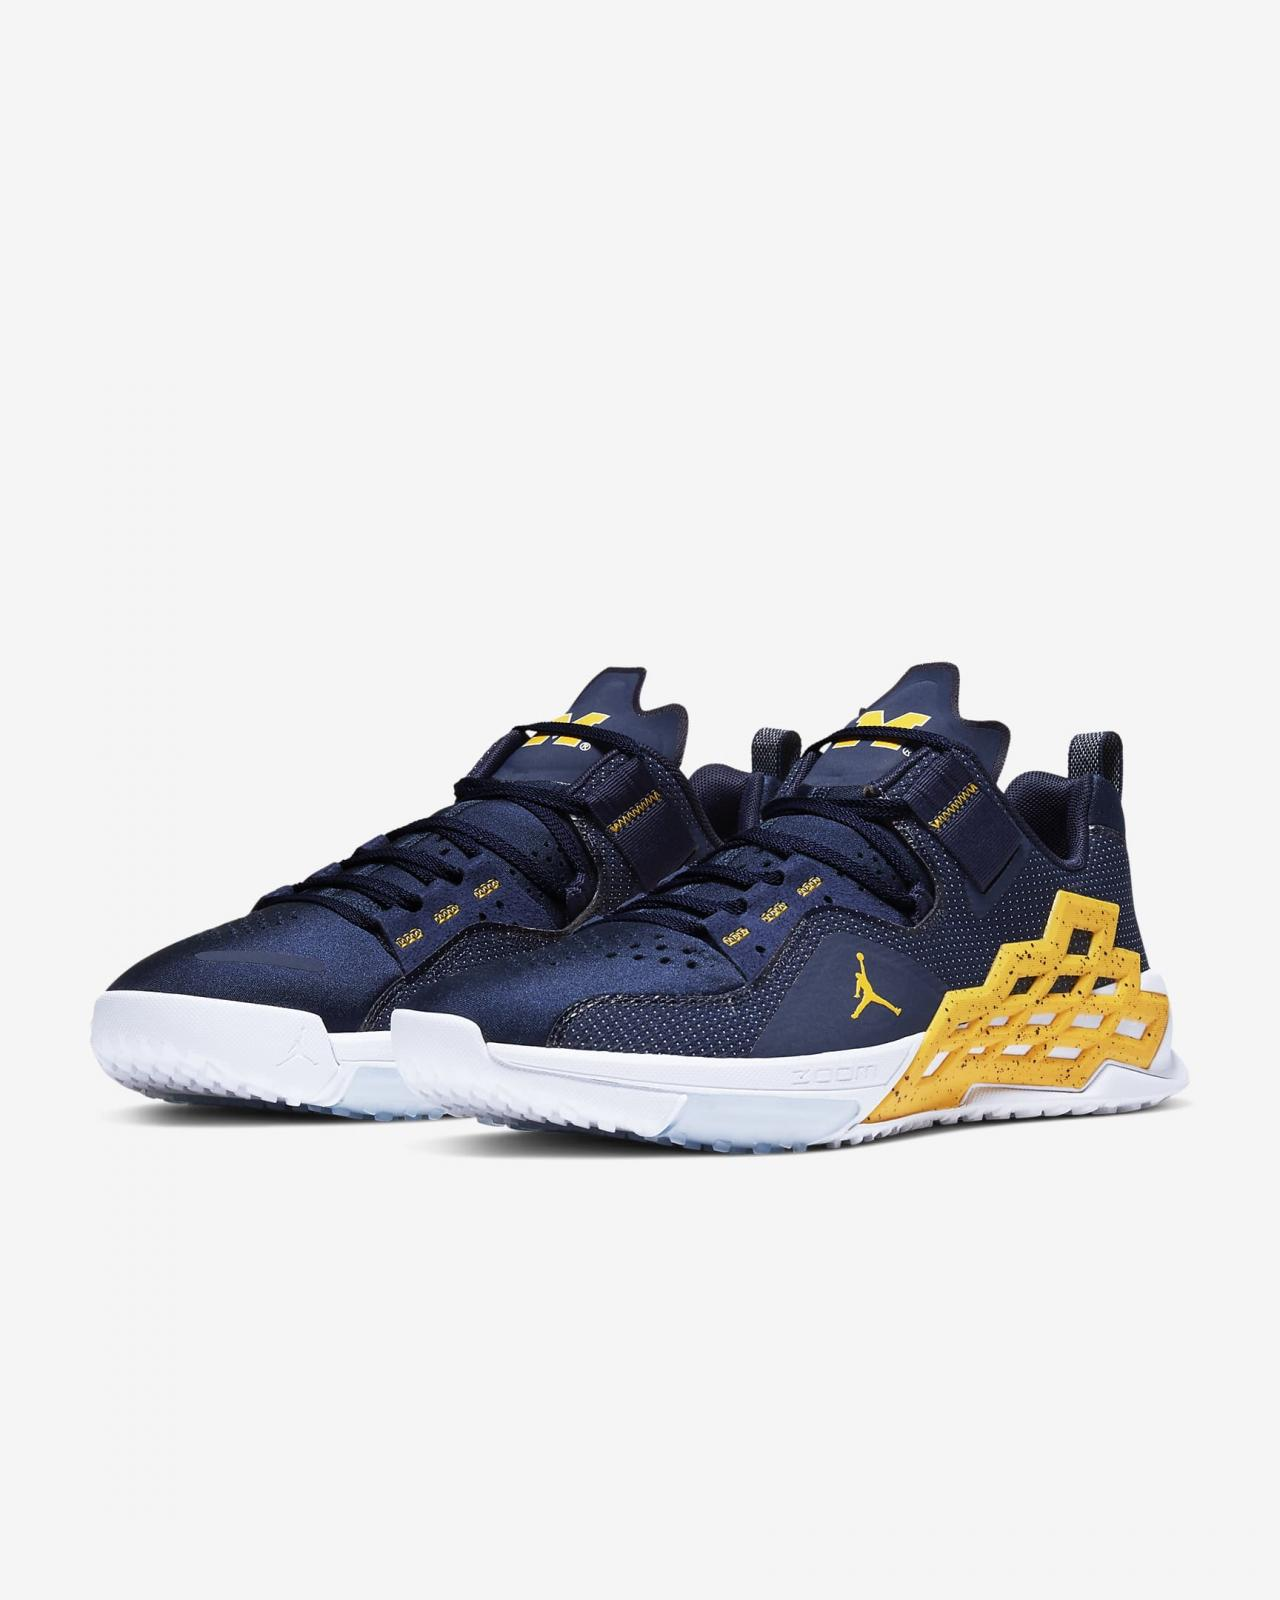 Jordan品牌推出全新Jordan Alpha 360 TR (Michigan)